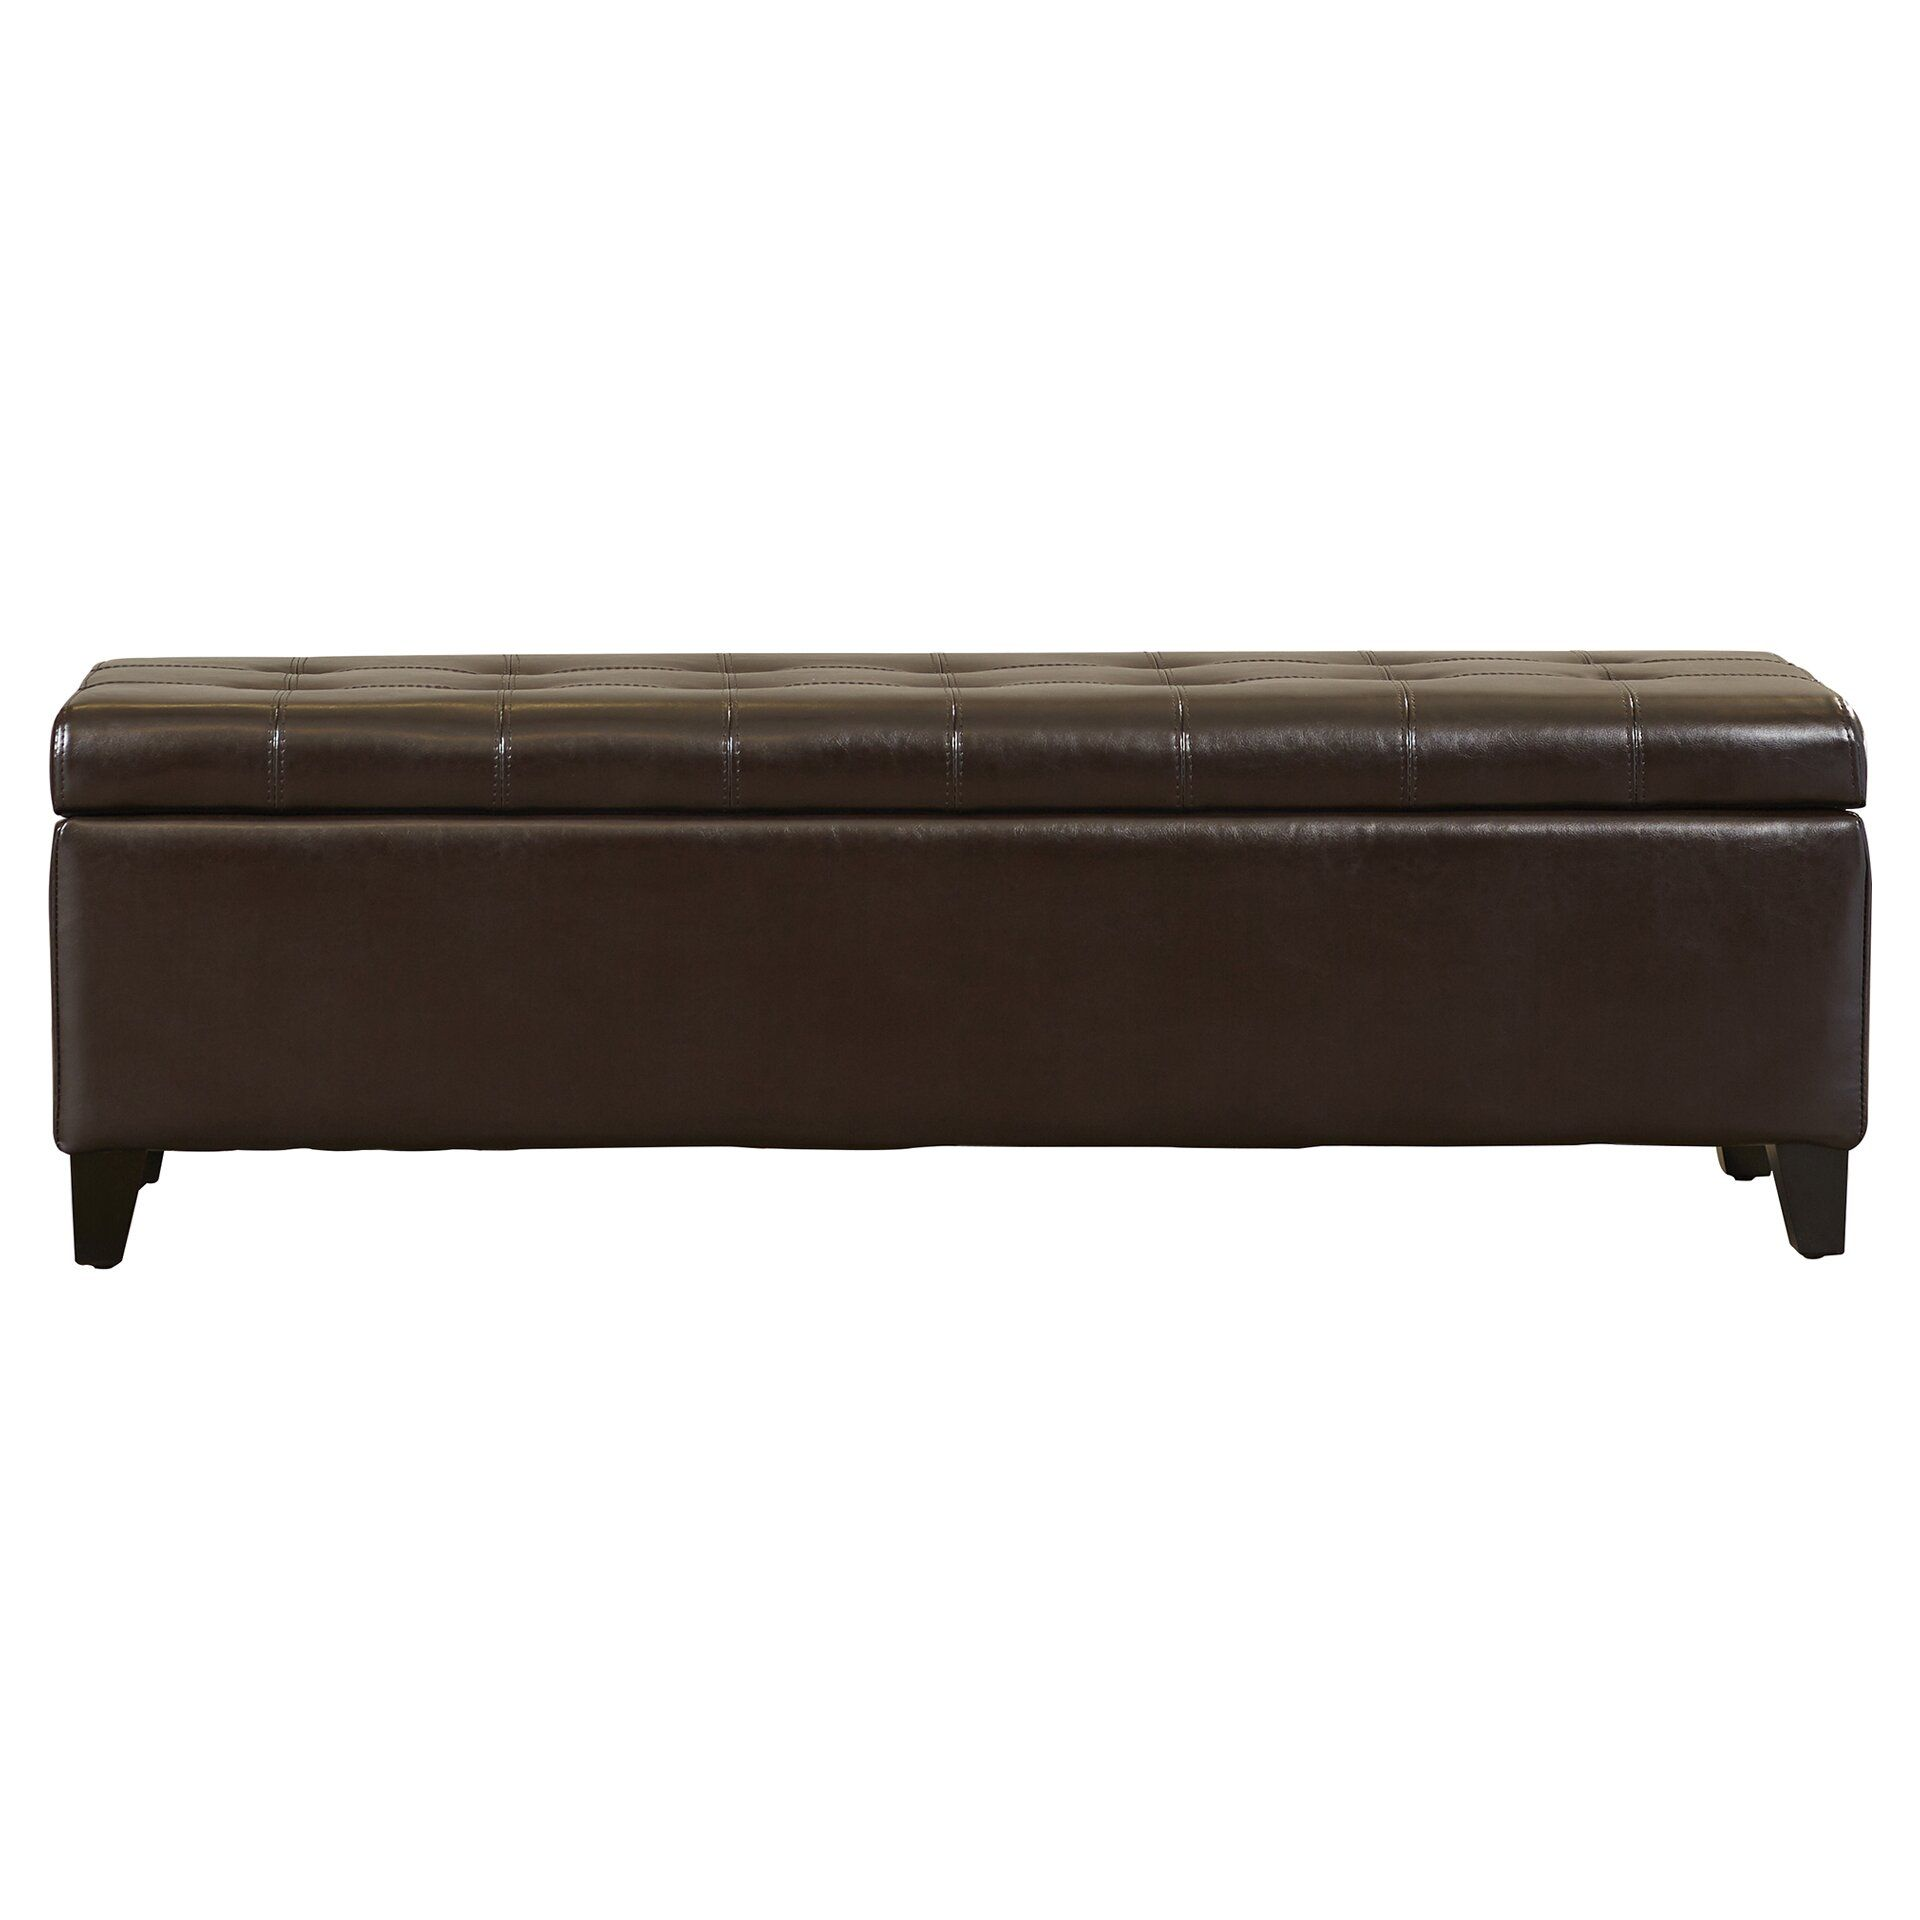 114 Reference Of Storage Bench Seat Bedroom White Leather In 2020 Storage Bench Storage Bench Seating Bedroom Bench Seat